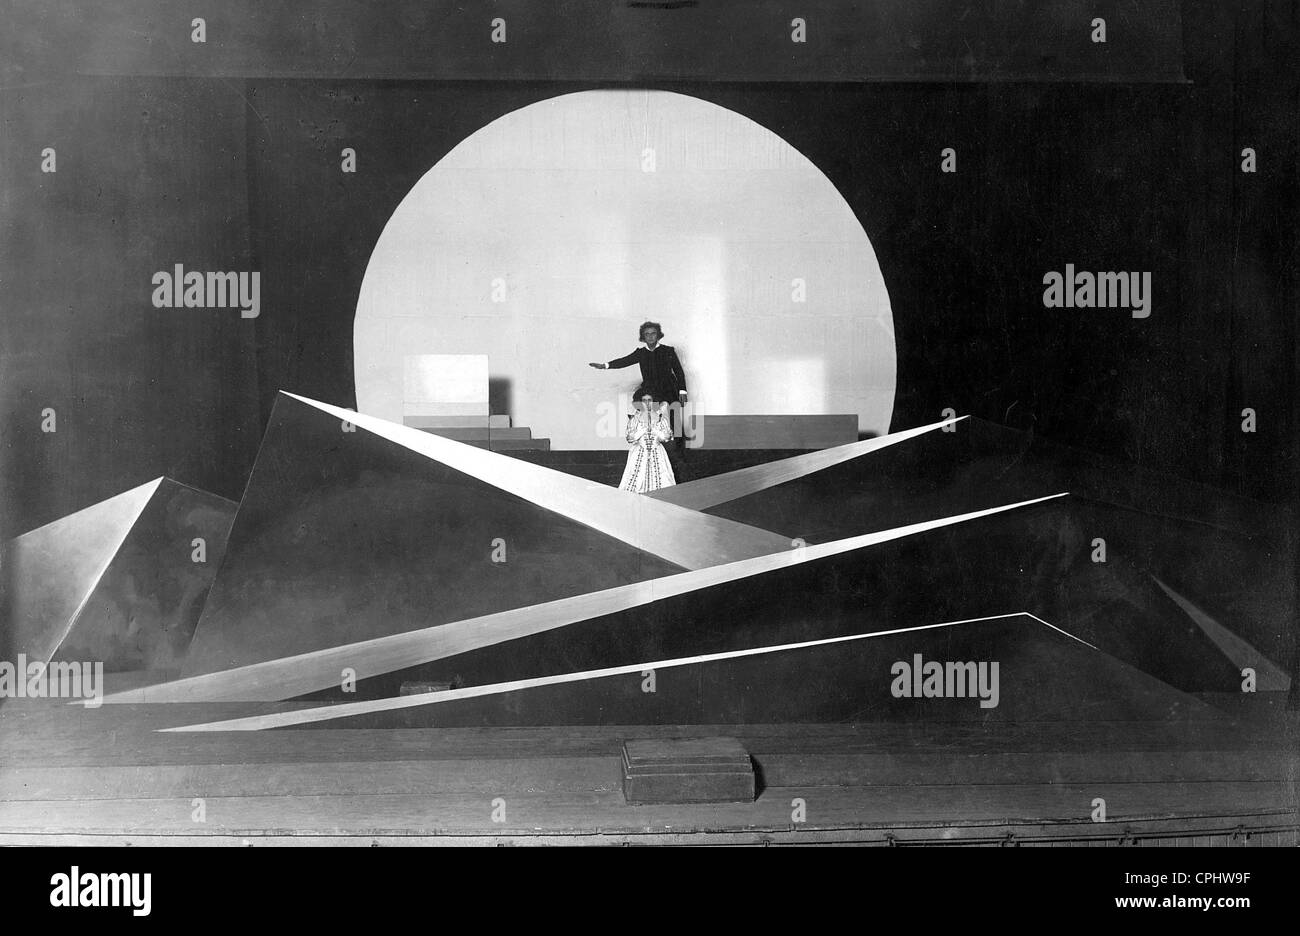 'Don Juan und Faust' with stage design by Oskar Schlemmer, 1925 - Stock Image